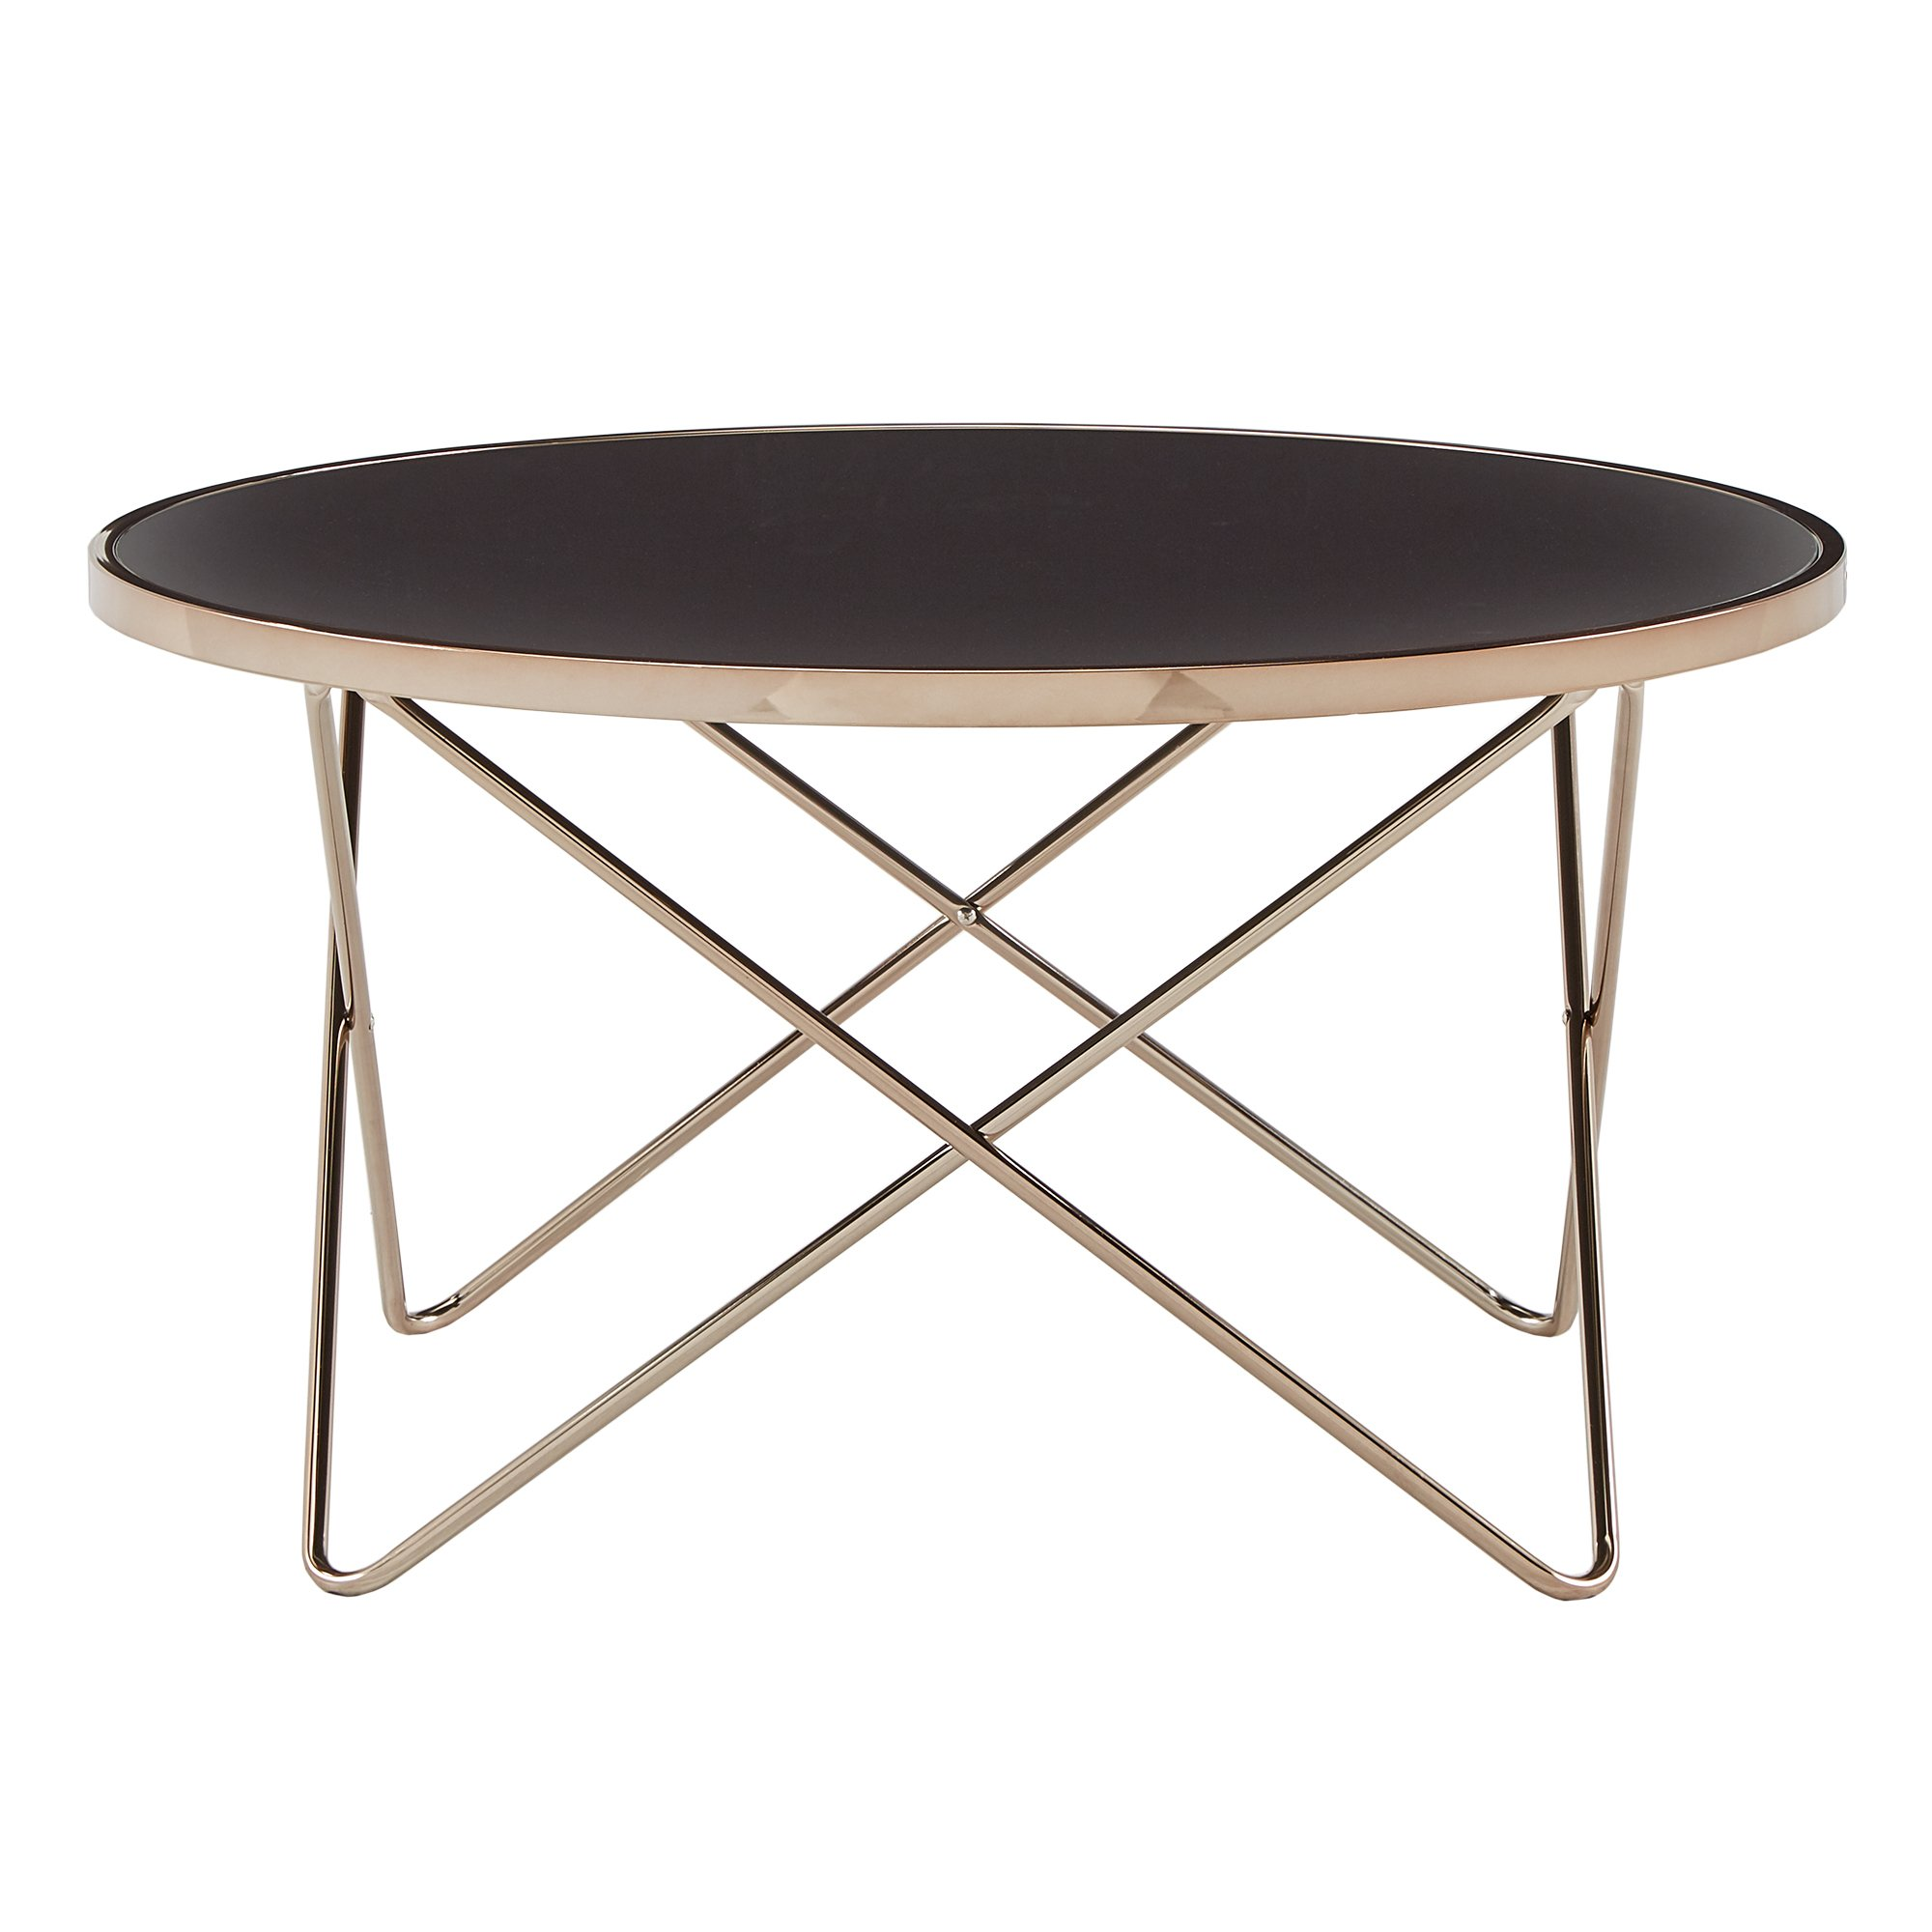 gabe champagne gold finish hairpin leg accent tables with black glass top inspire bold room essentials table free shipping today light lamp threshold espresso legs small entryway